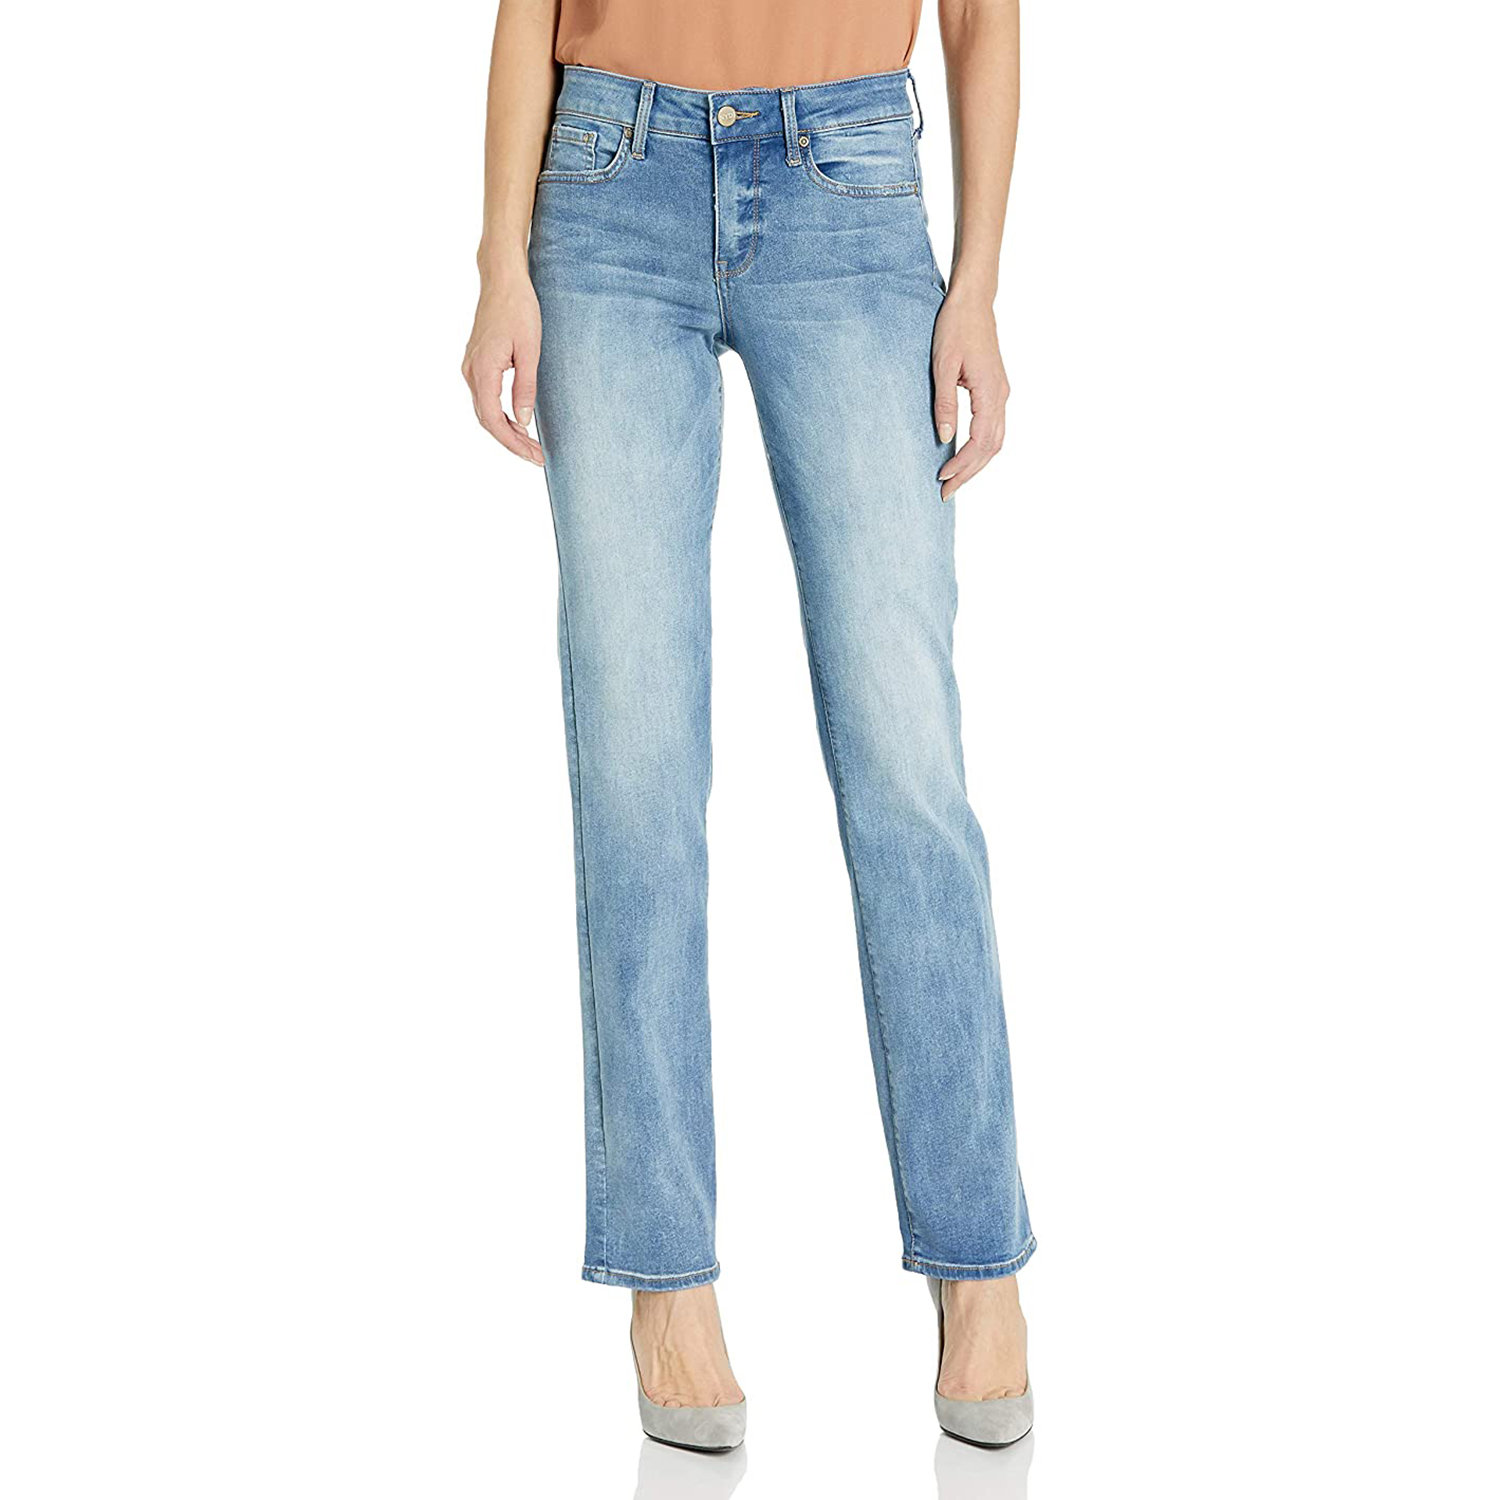 NYDJ Women's Jeans on Amazon